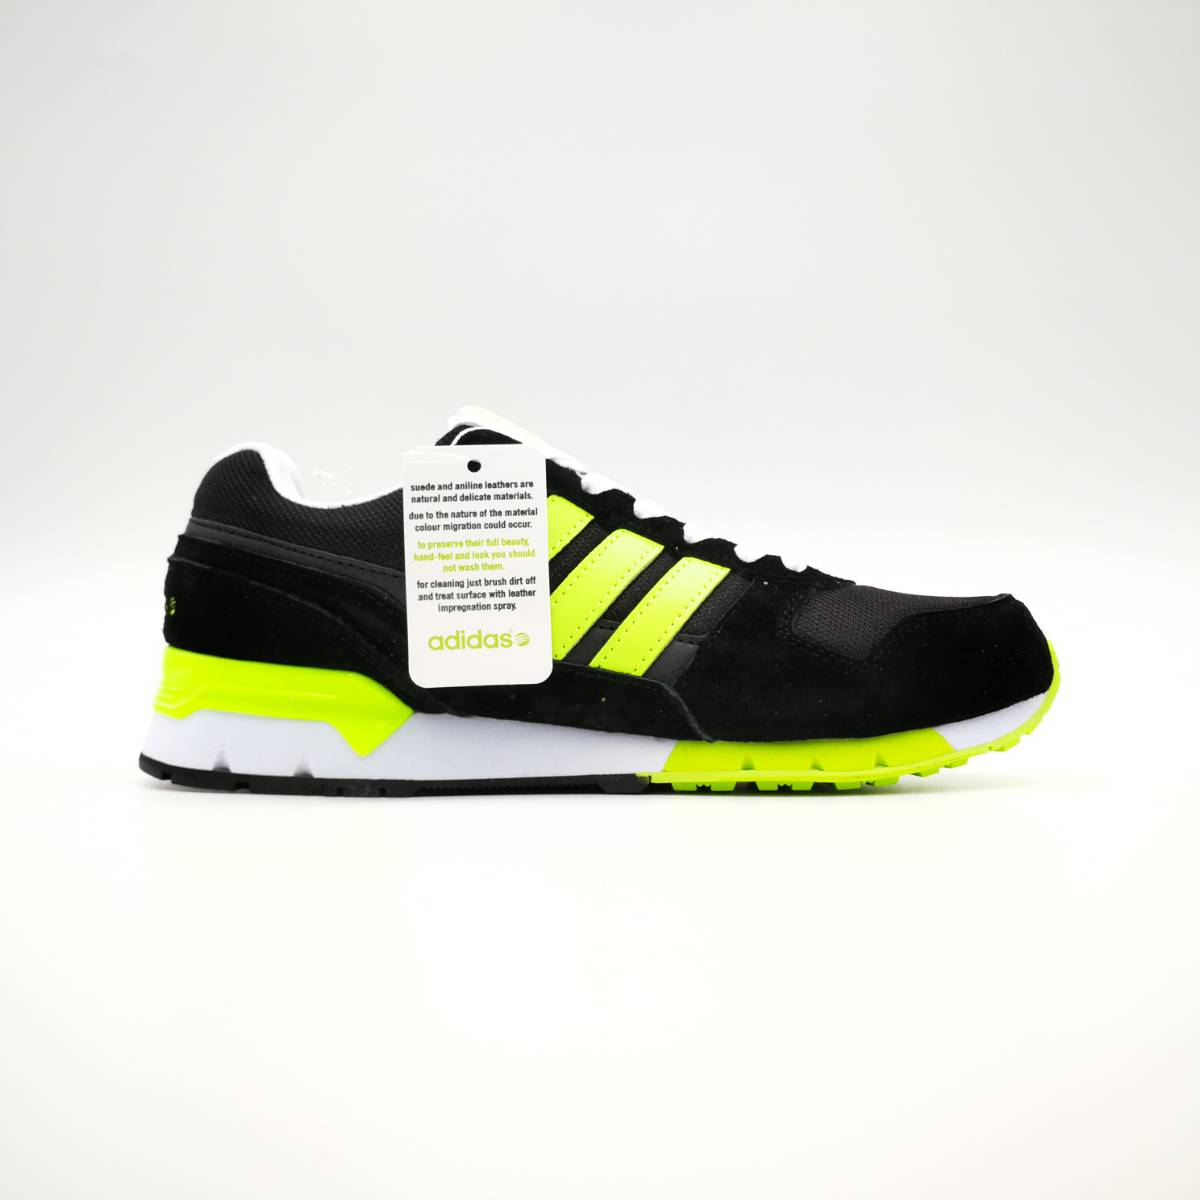 outlet store aec0f b6979 Adidas NEO 8K RUNNER Black Neon Green White - Inshout - Nationwide shipping  Pakistan